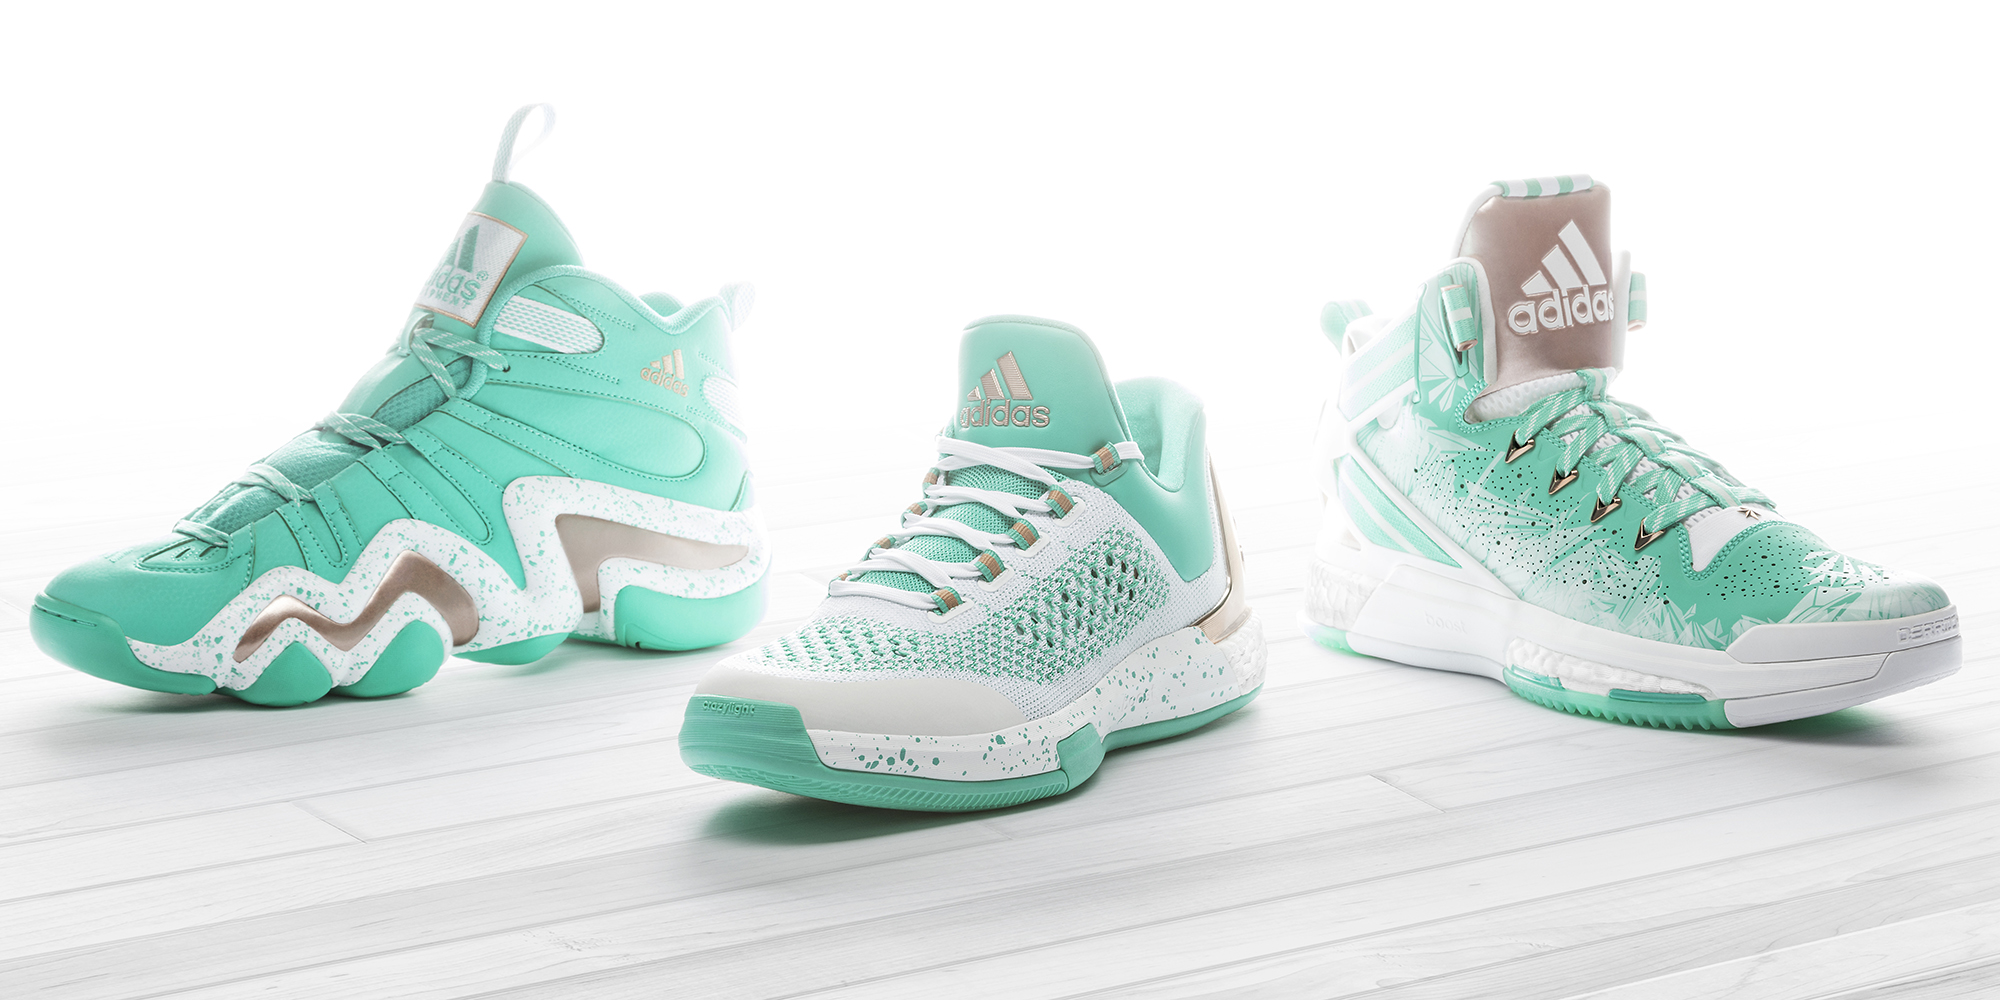 adidas Hoops Unveils 2015 Christmas Collection 1